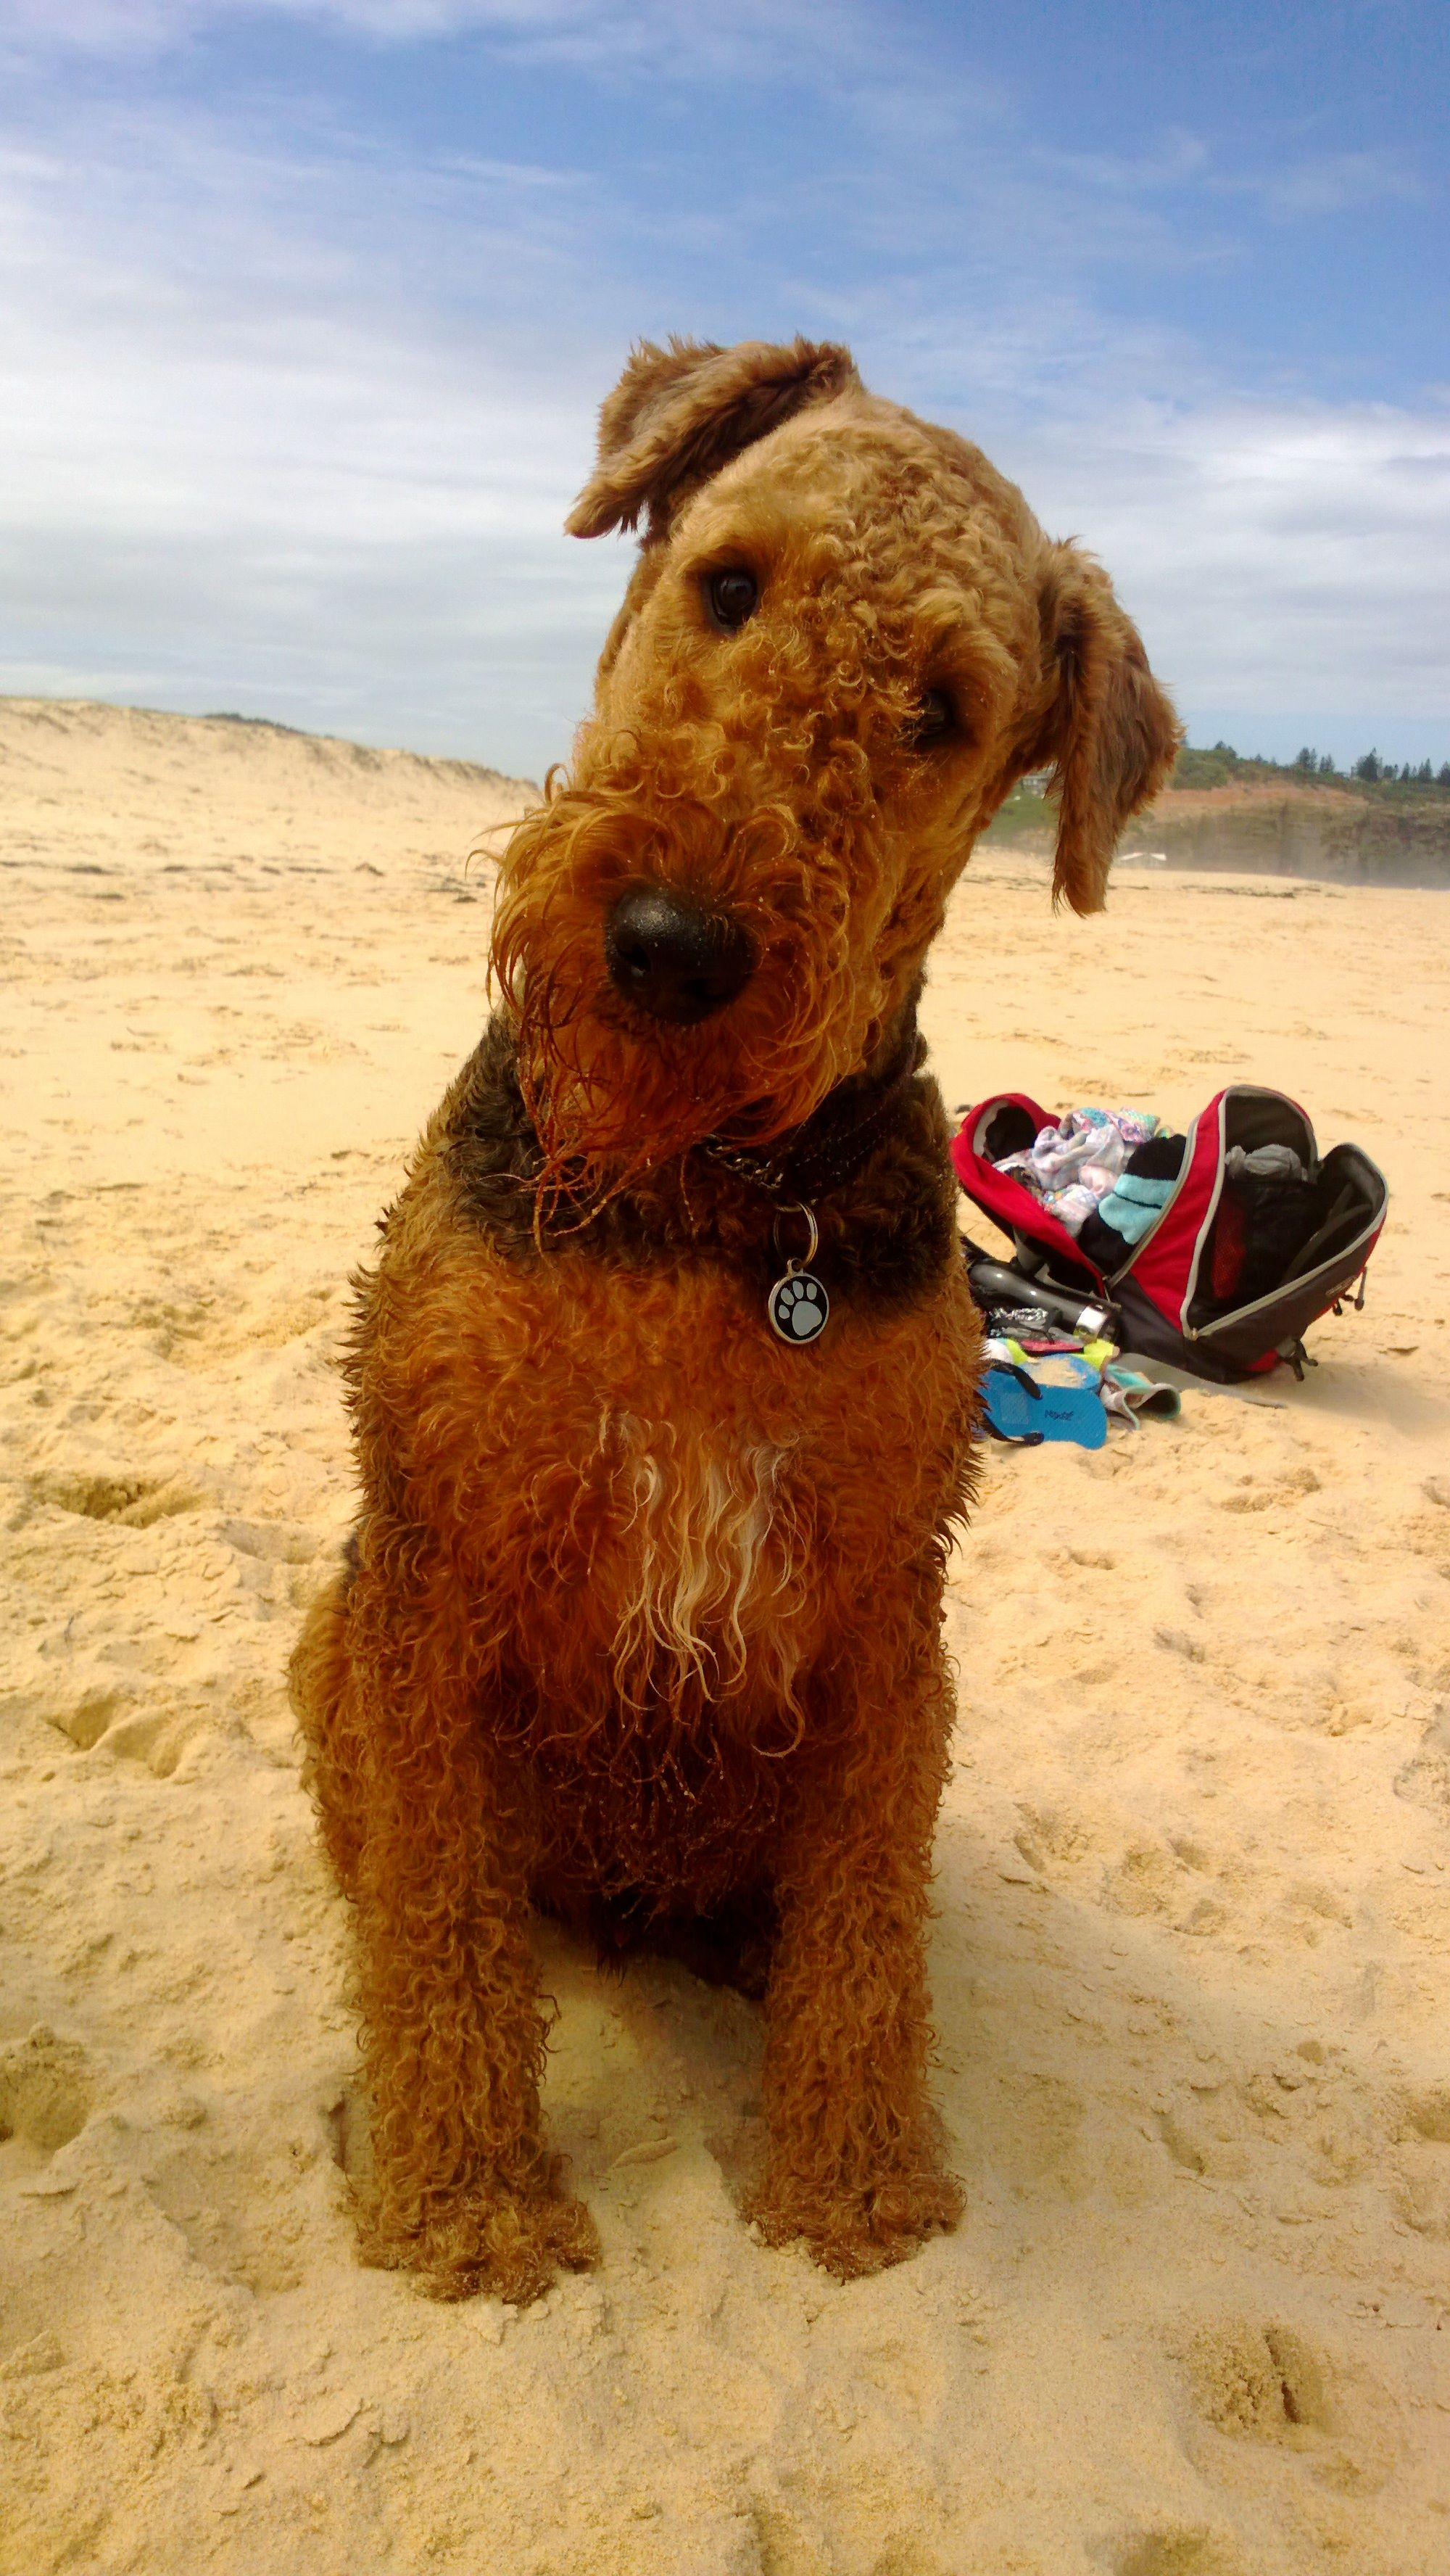 Airedale Performing The Trademark Head Tilt Their Brains Work Better At An Angle Airedale Dogs Airedale Terrier Puppies Airedale Terrier